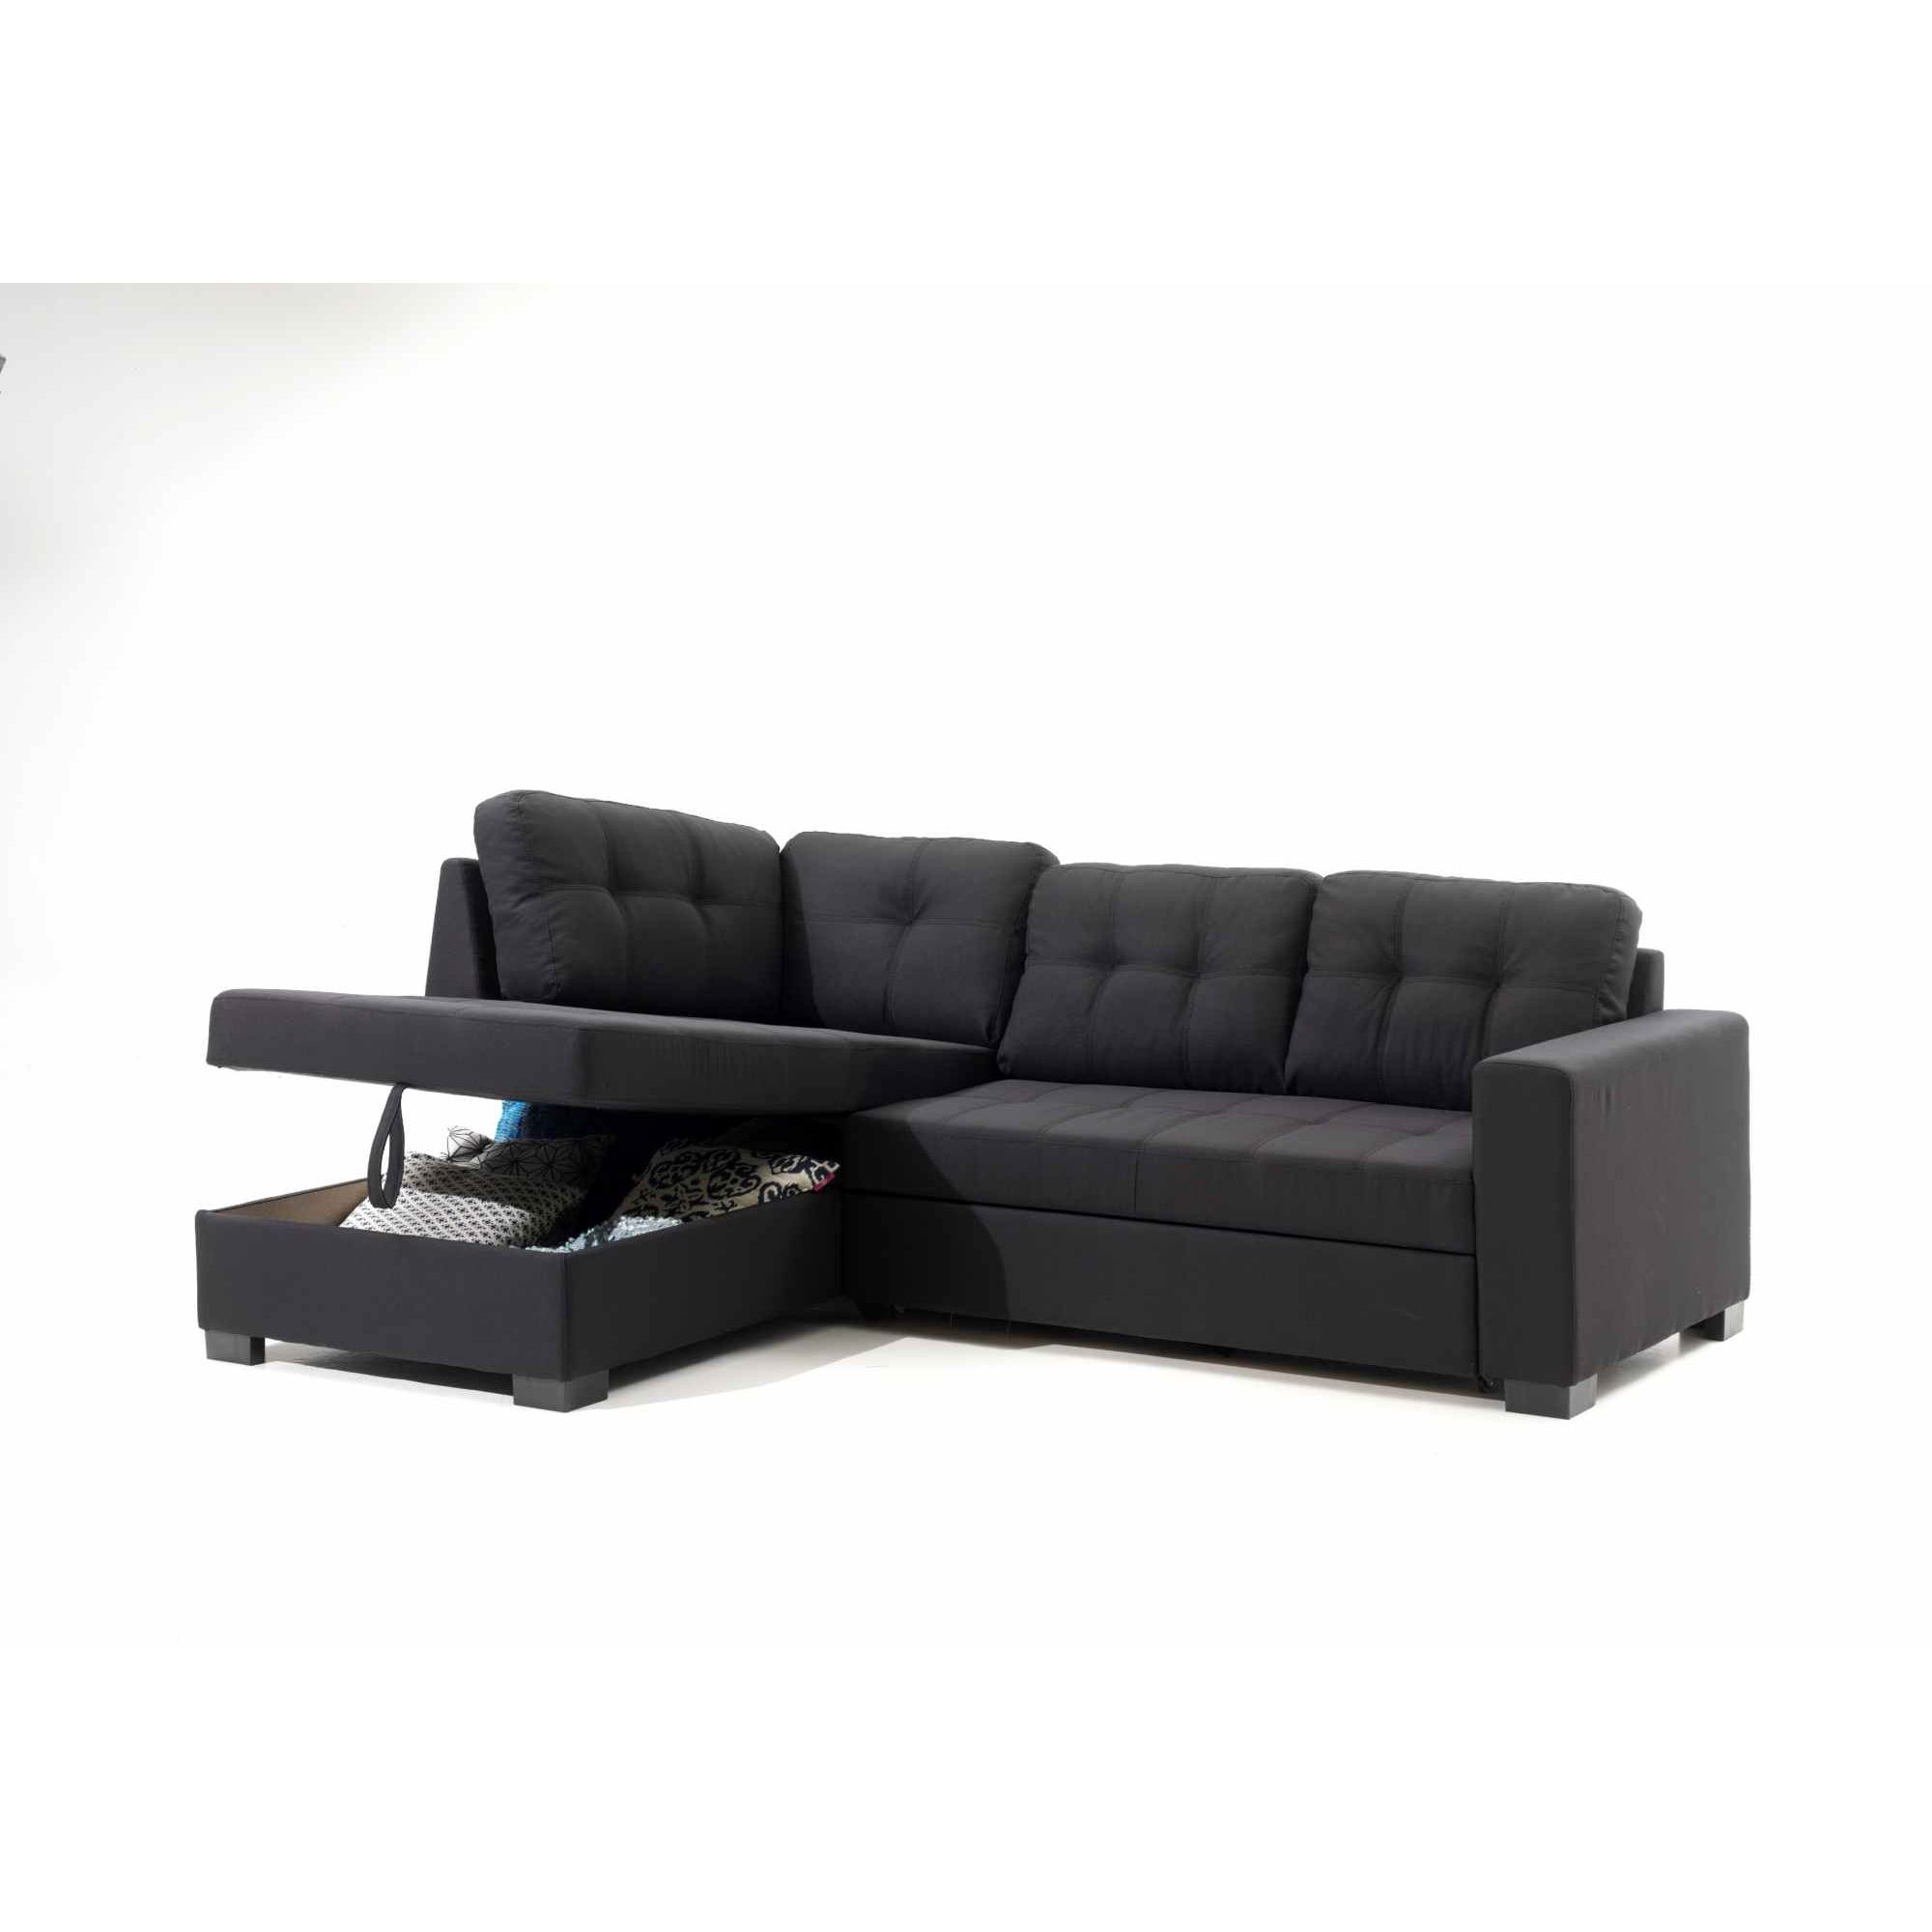 deco in paris canape d angle gauche convertible avec coffre de rangement en tissu noir kalypso. Black Bedroom Furniture Sets. Home Design Ideas